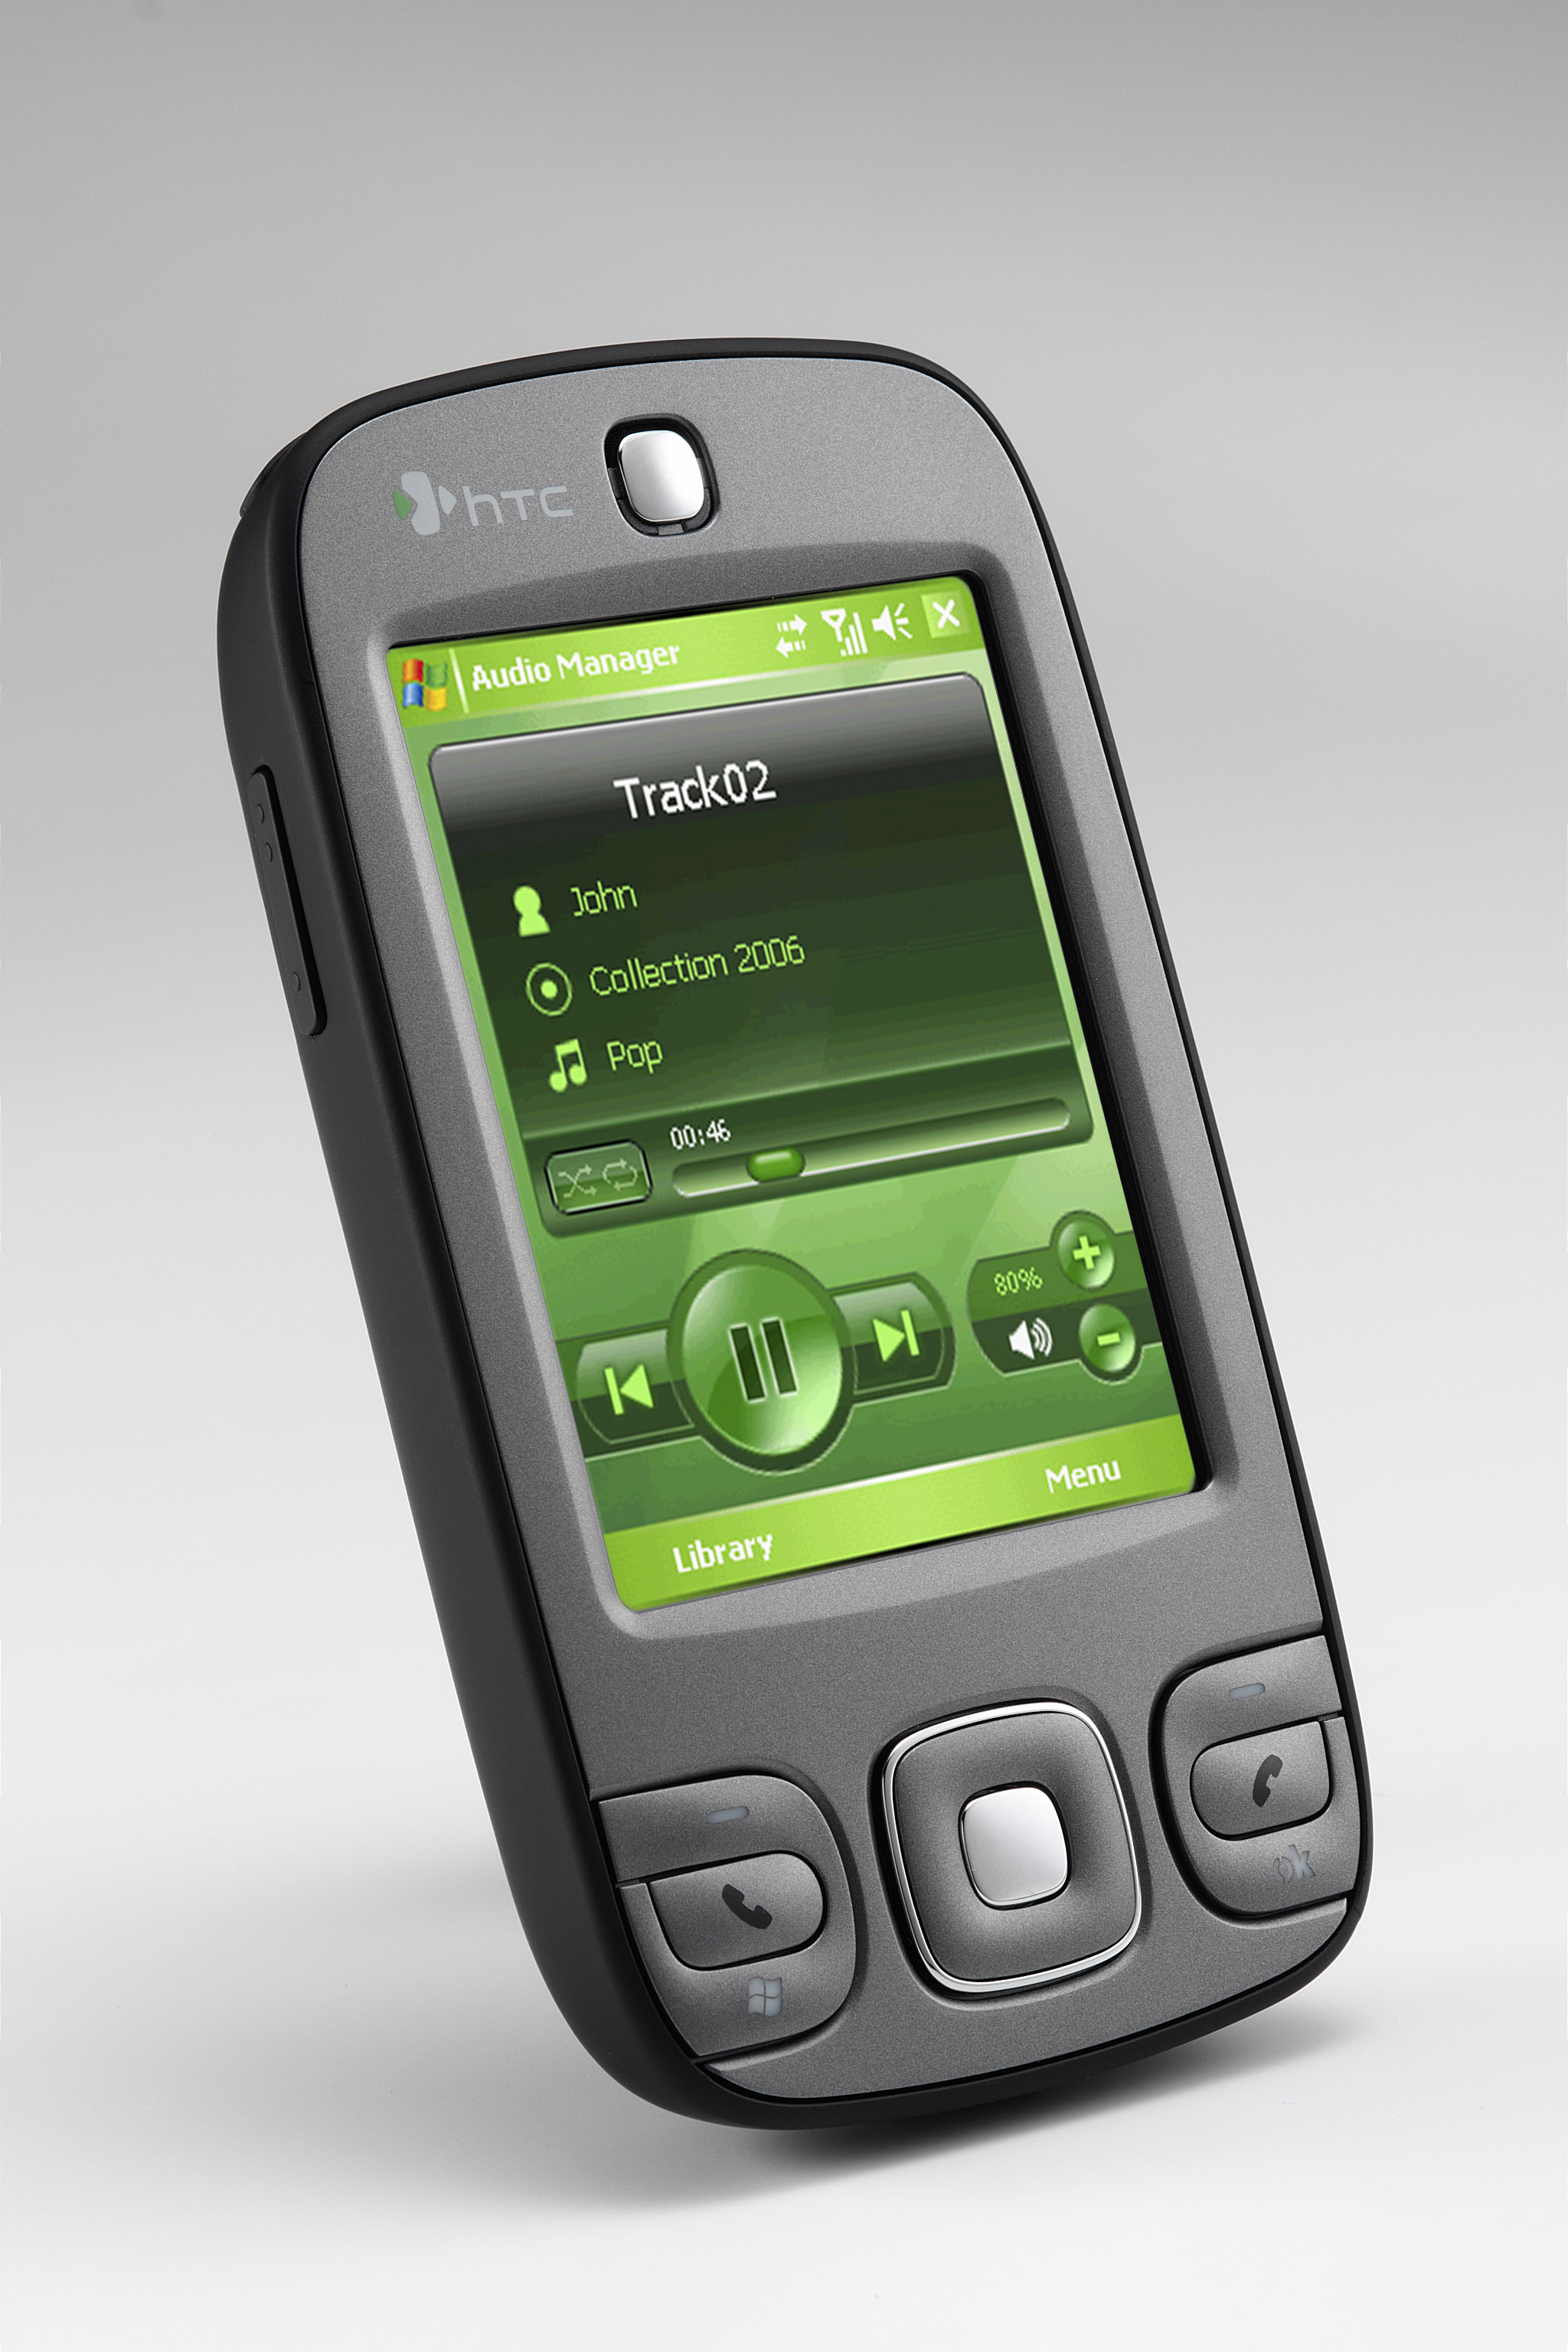 Download free pc suite for htc p3400i   siteun.